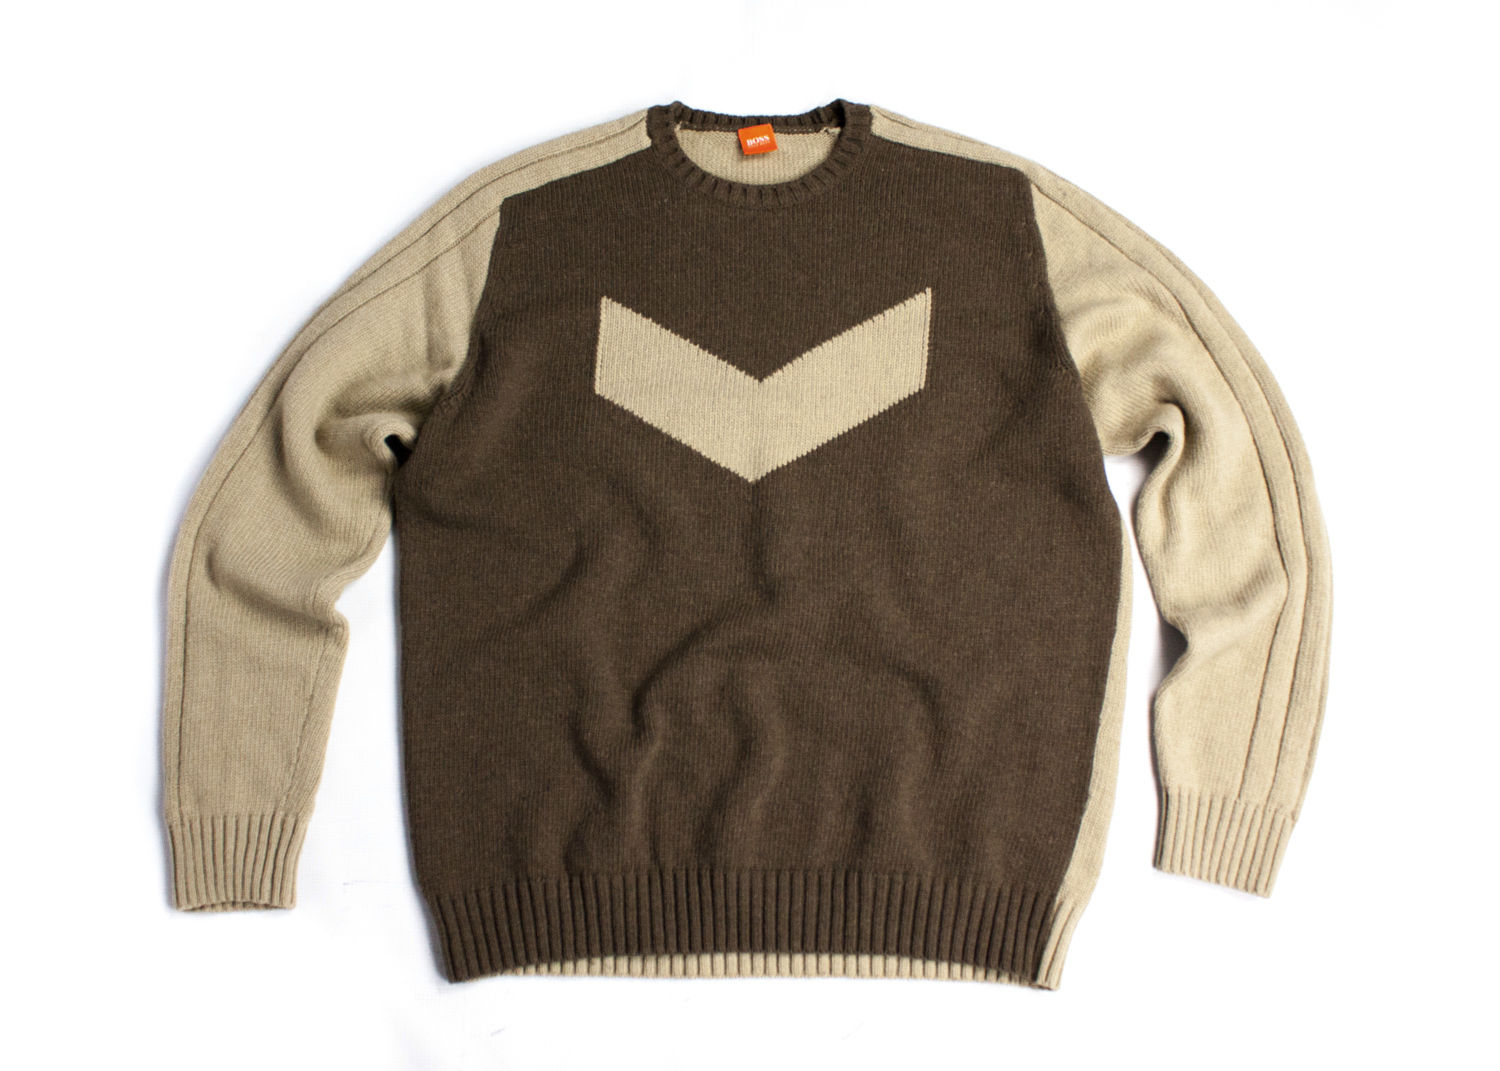 HUGO BOSS Orange Label Wool Brown Jumper Sweater, L - secondfirst